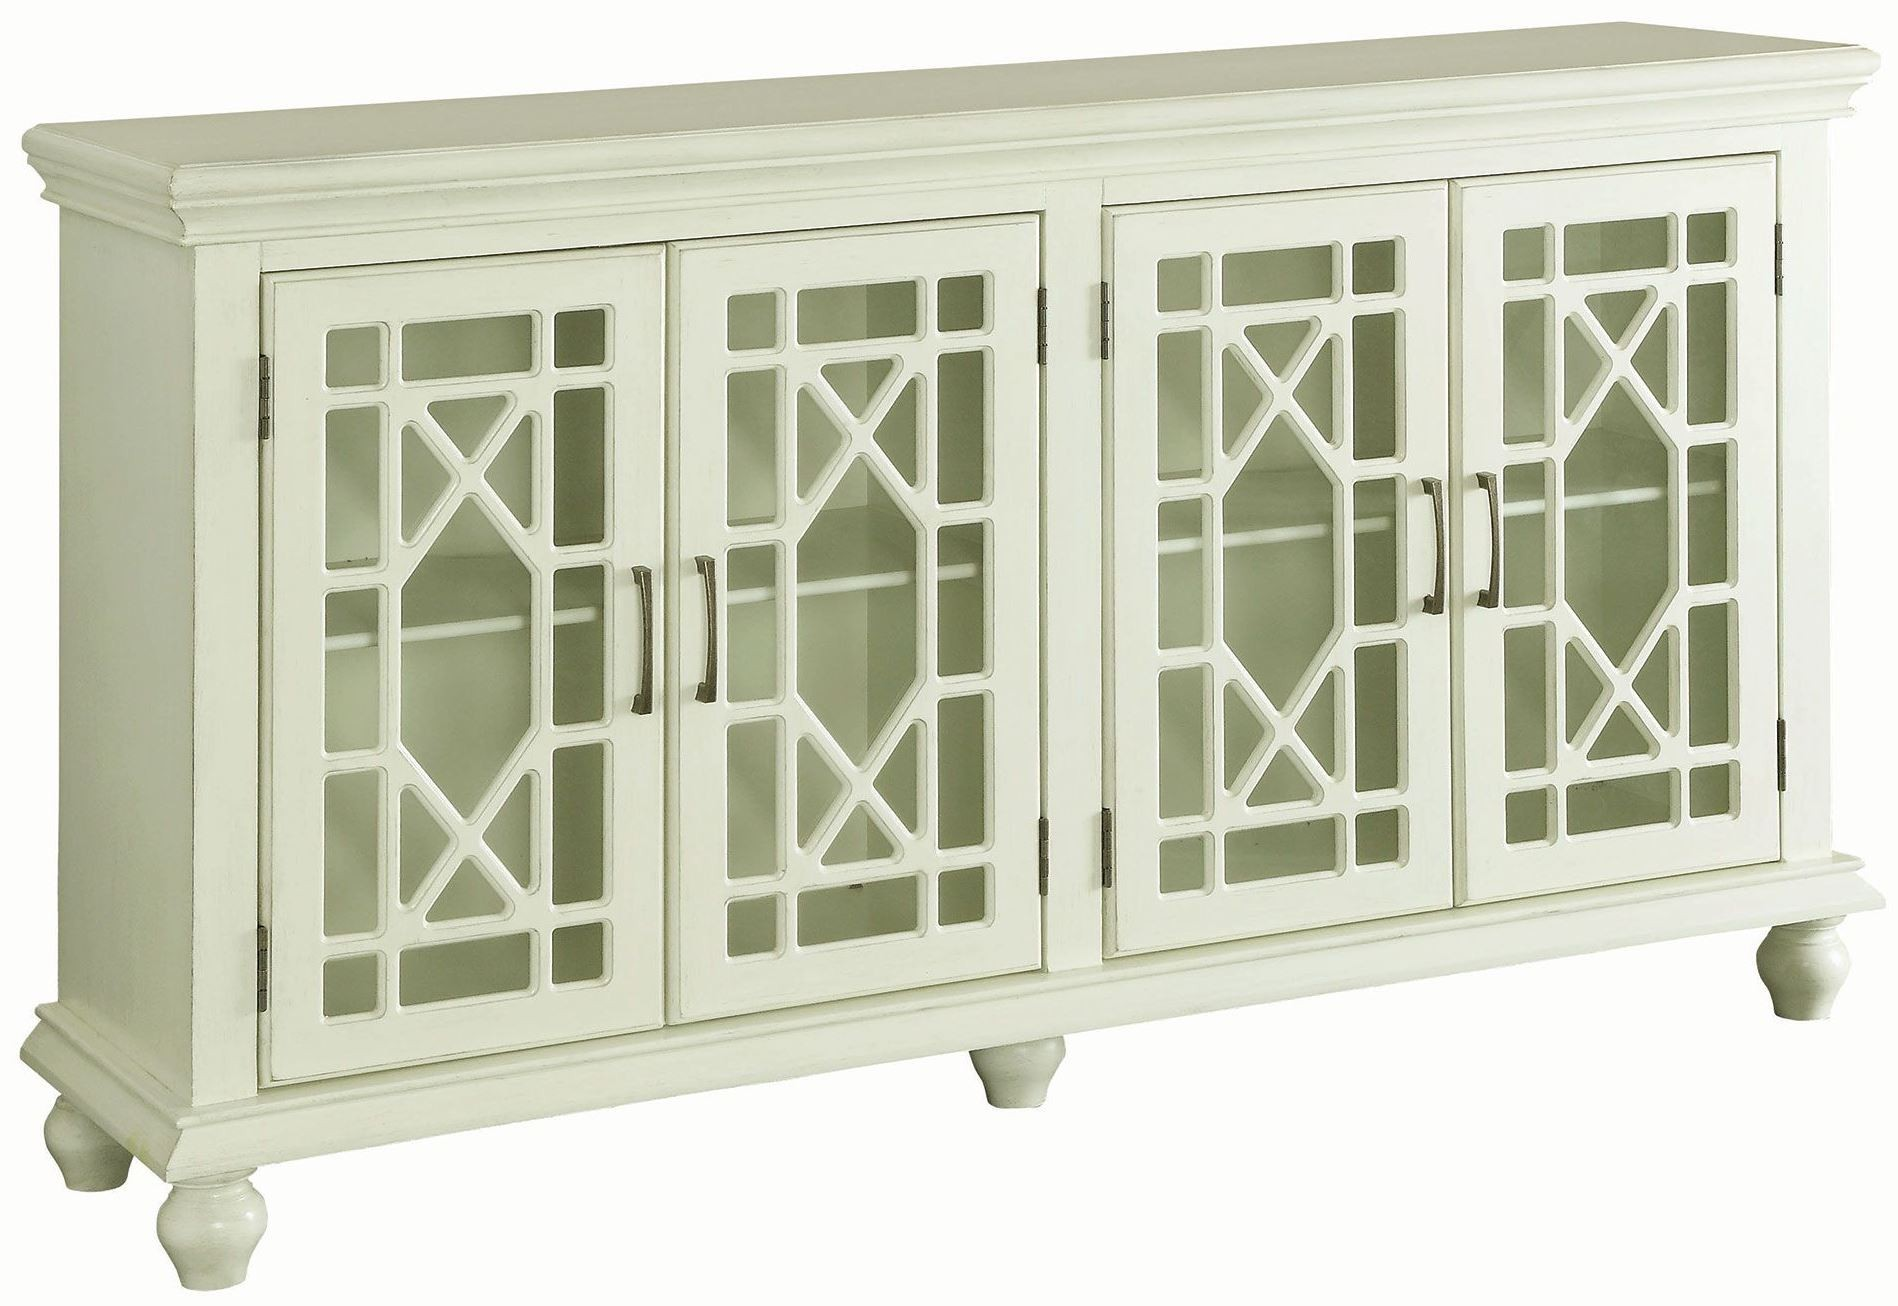 coaster antique white door accent cabinet collection table media gallery farm rustic lamps bar height patio glass bedside drawers touch end unfinished console small round wine